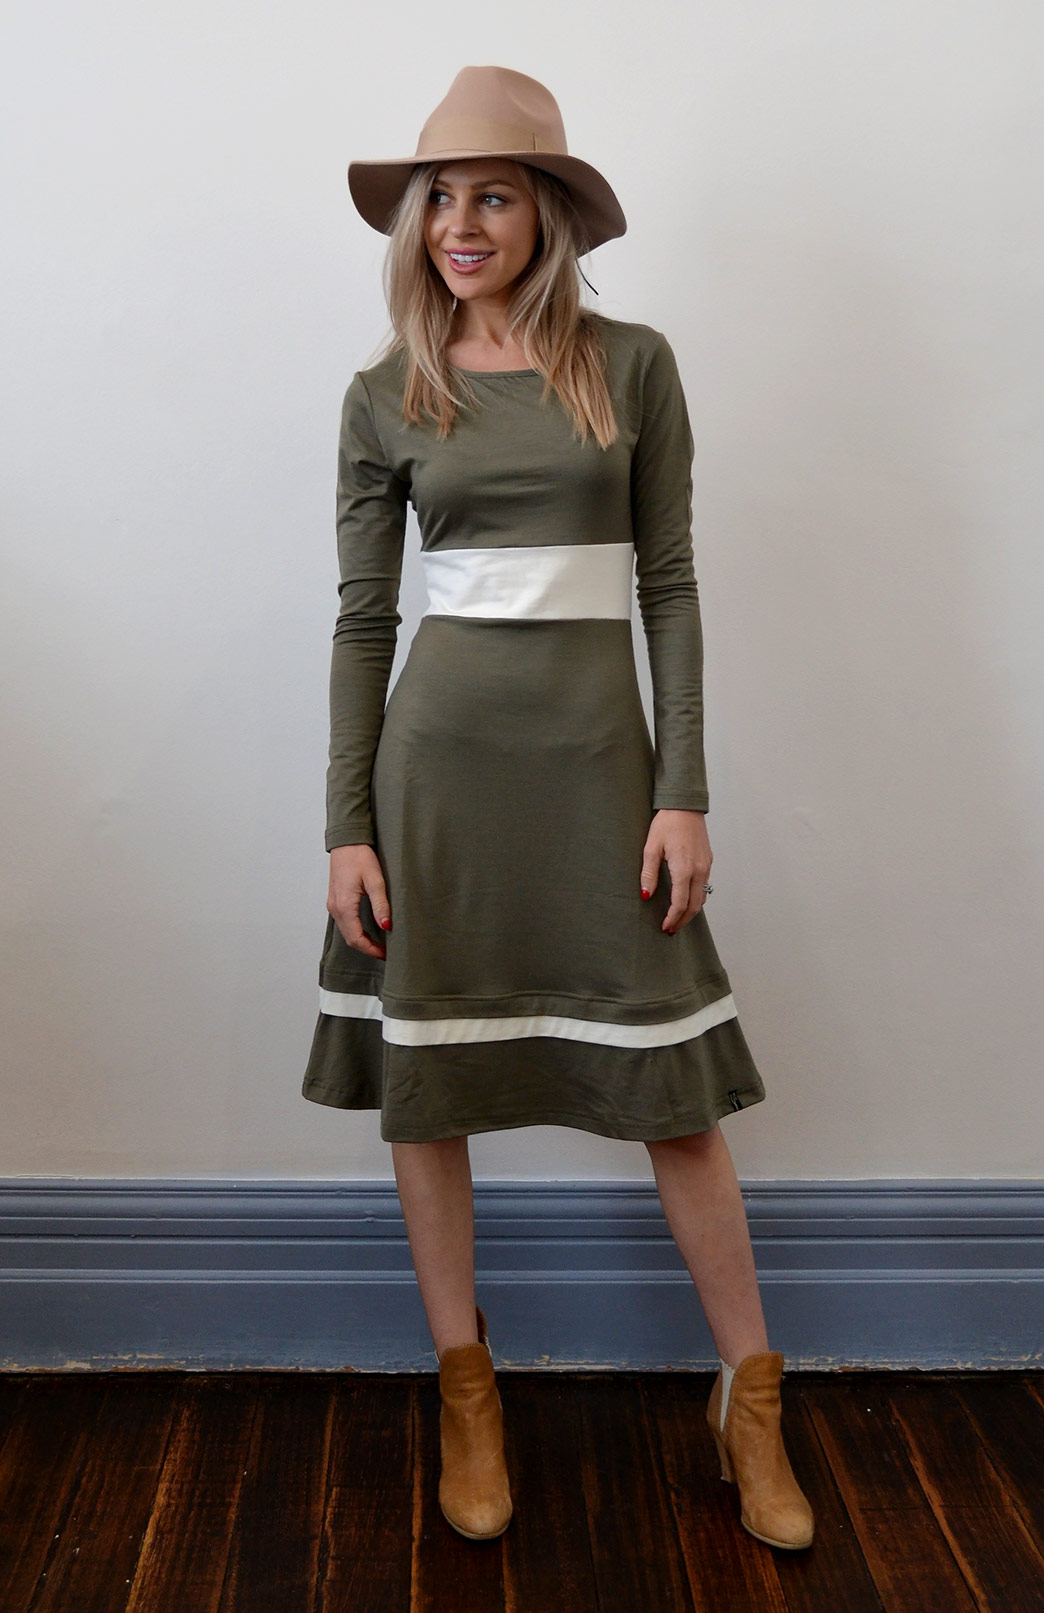 Indi Dress - Women's Long Sleeved Olive Winter Wool Dress - Smitten Merino Tasmania Australia